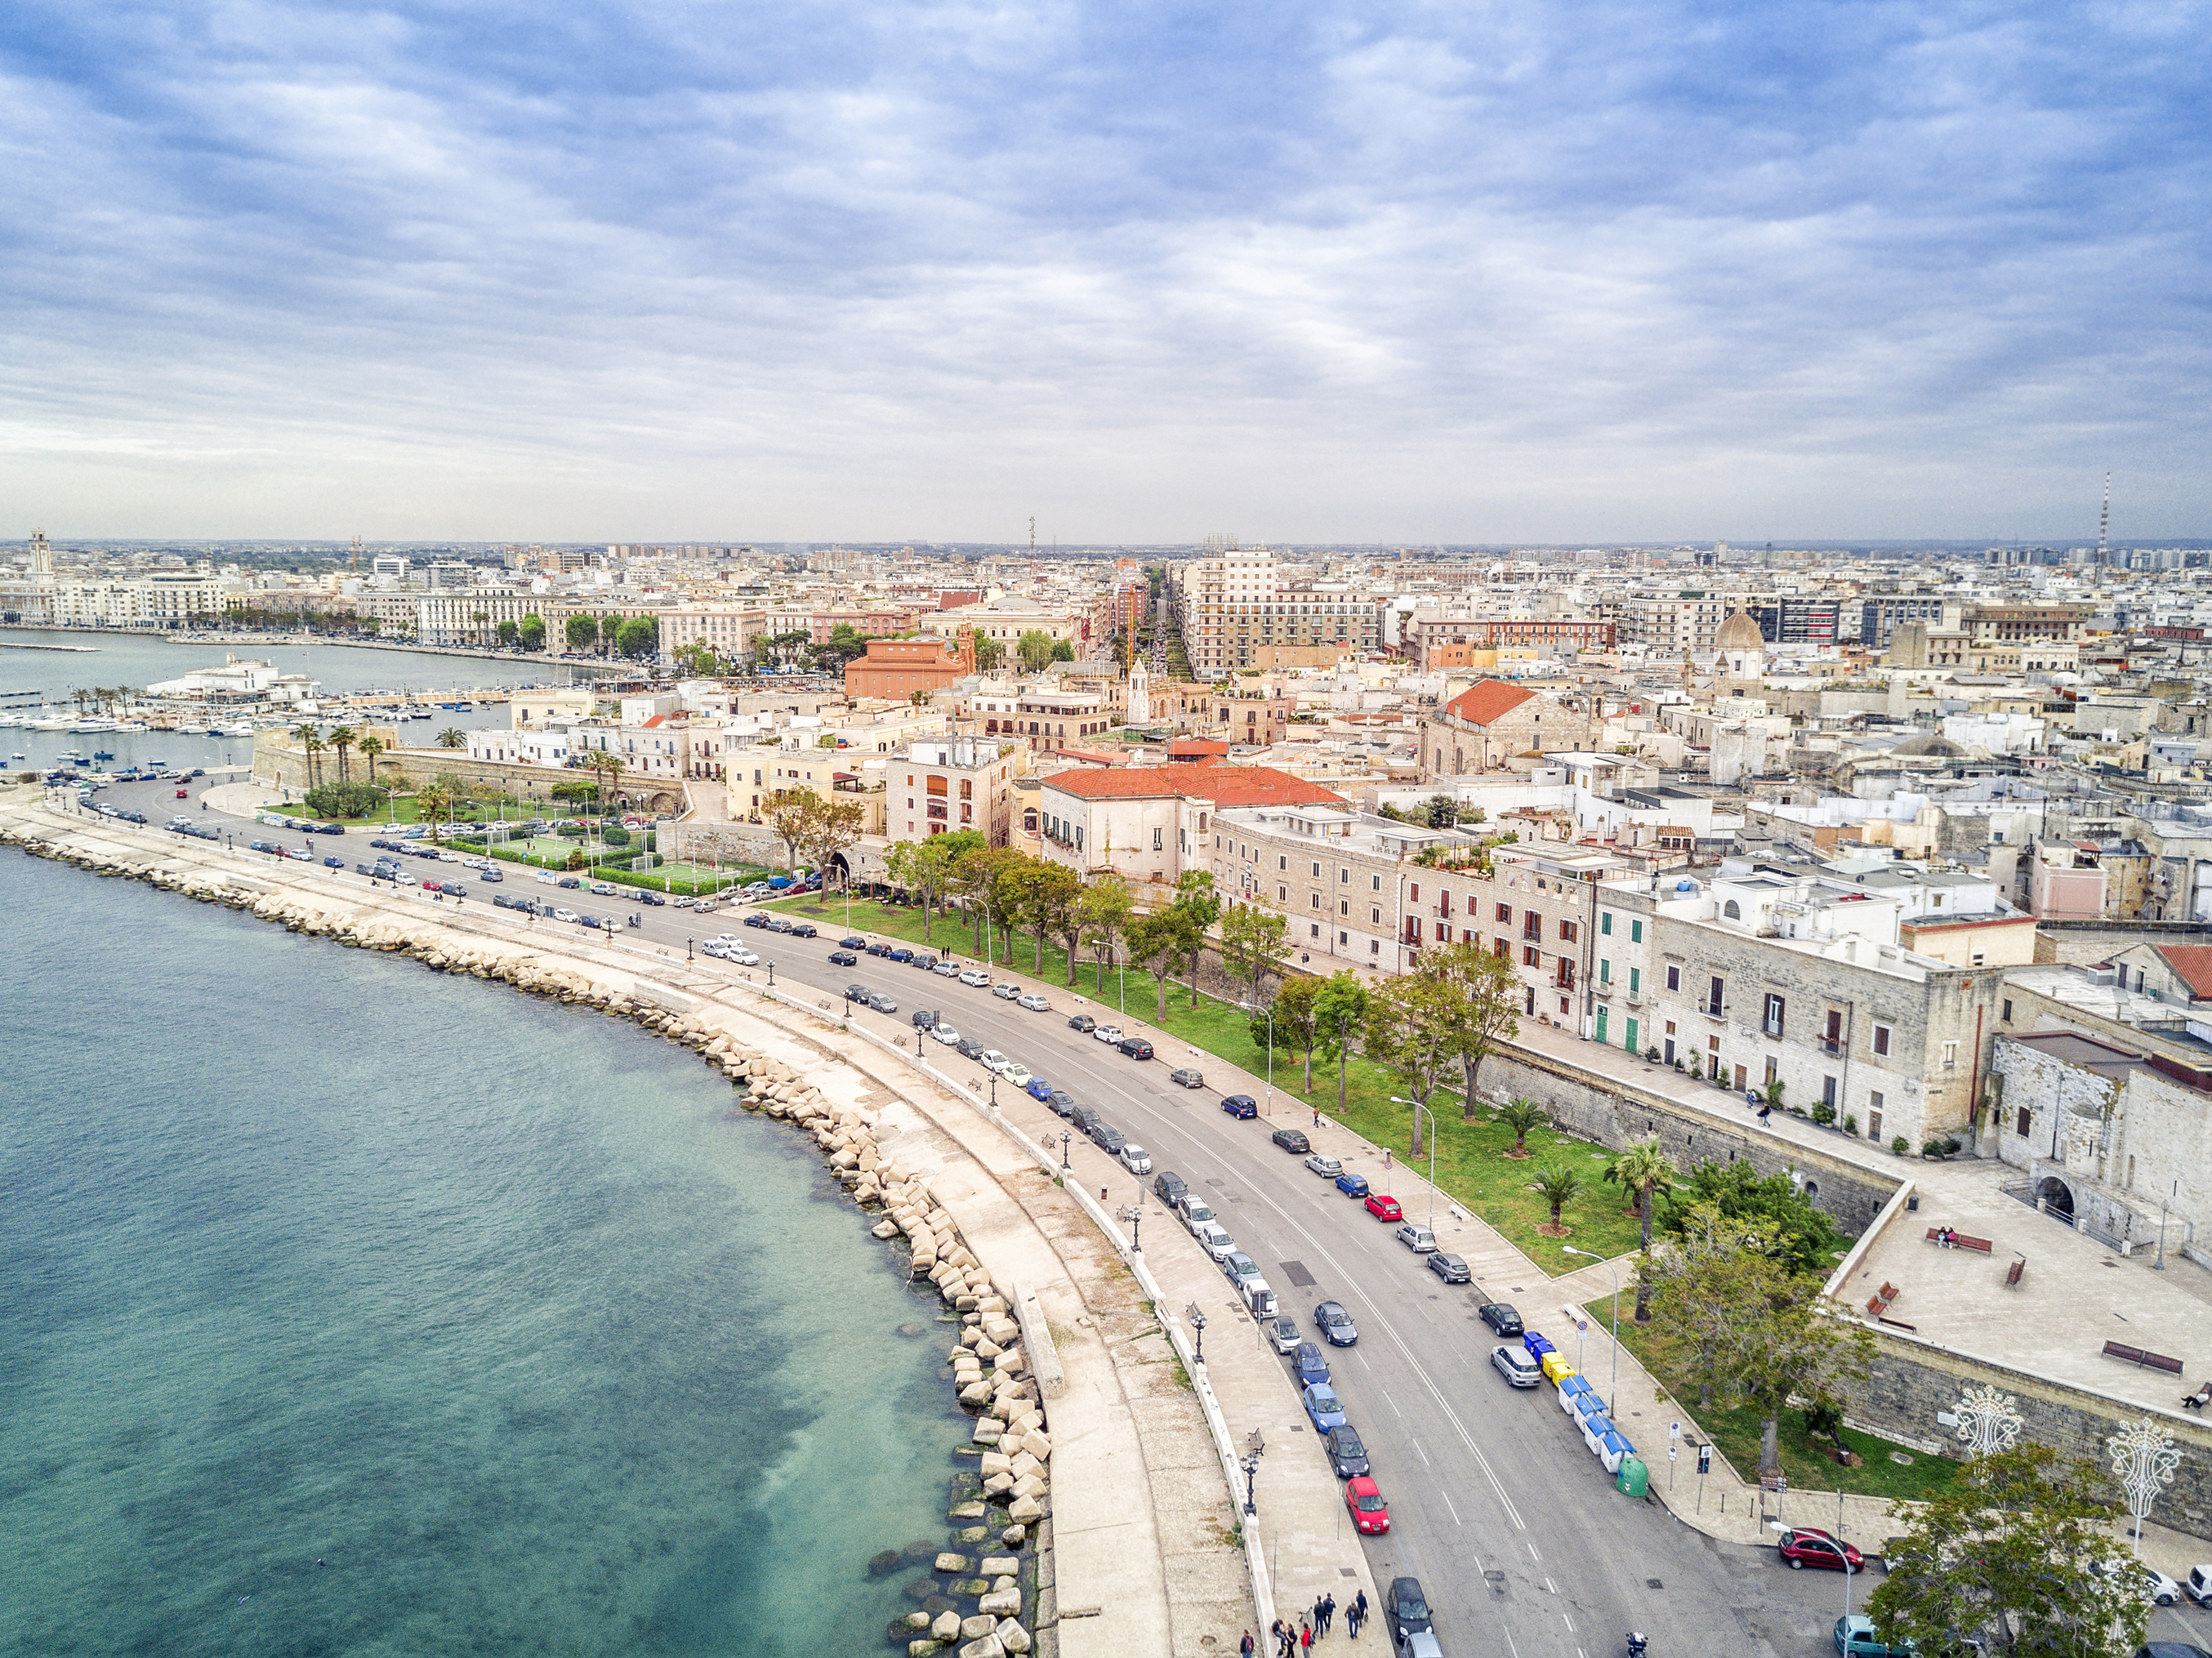 Panoramic view of sea and old town in Bari, Puglia, Italy. (Jacek_SopotnickiThinkstock/PA)